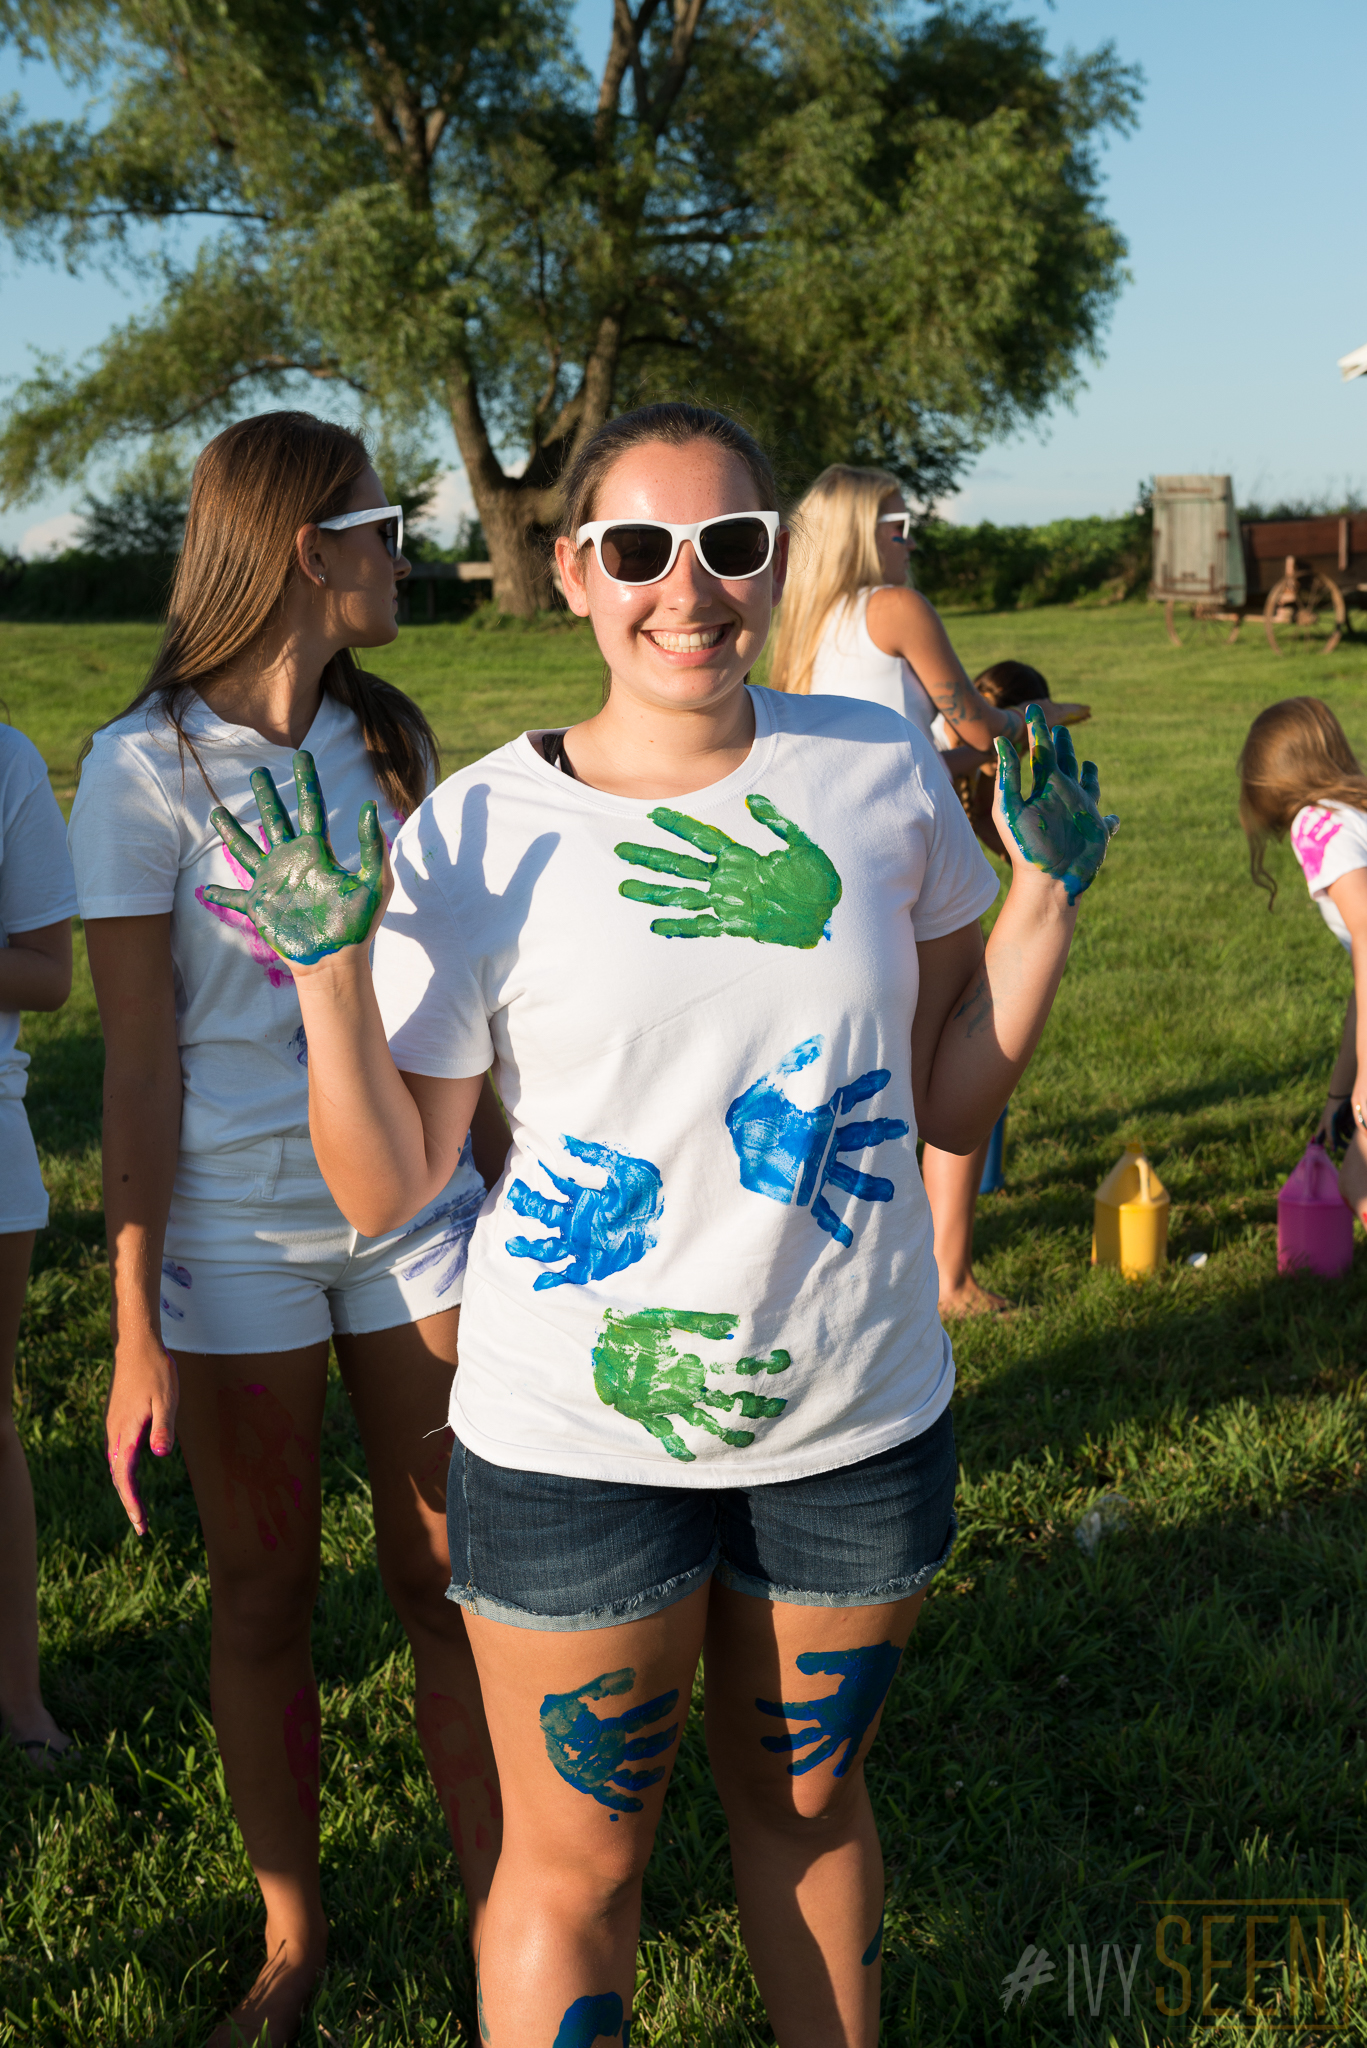 ivyseen-senior-pictures-iowa-city-paint-war-61